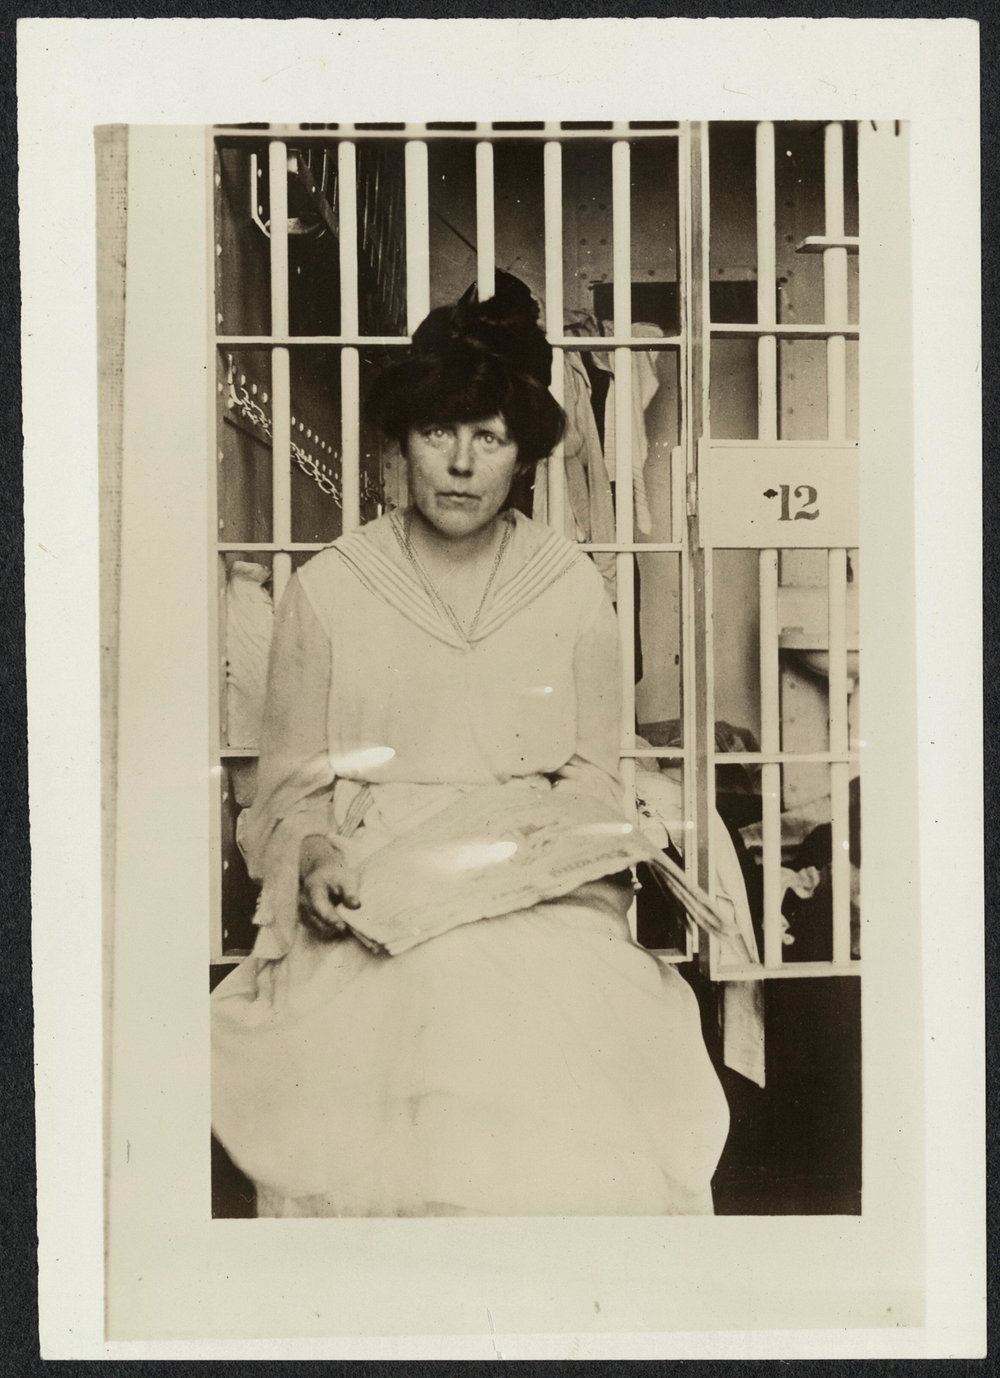 Miss [Lucy] Burns in Occoquan Workhouse, Washington